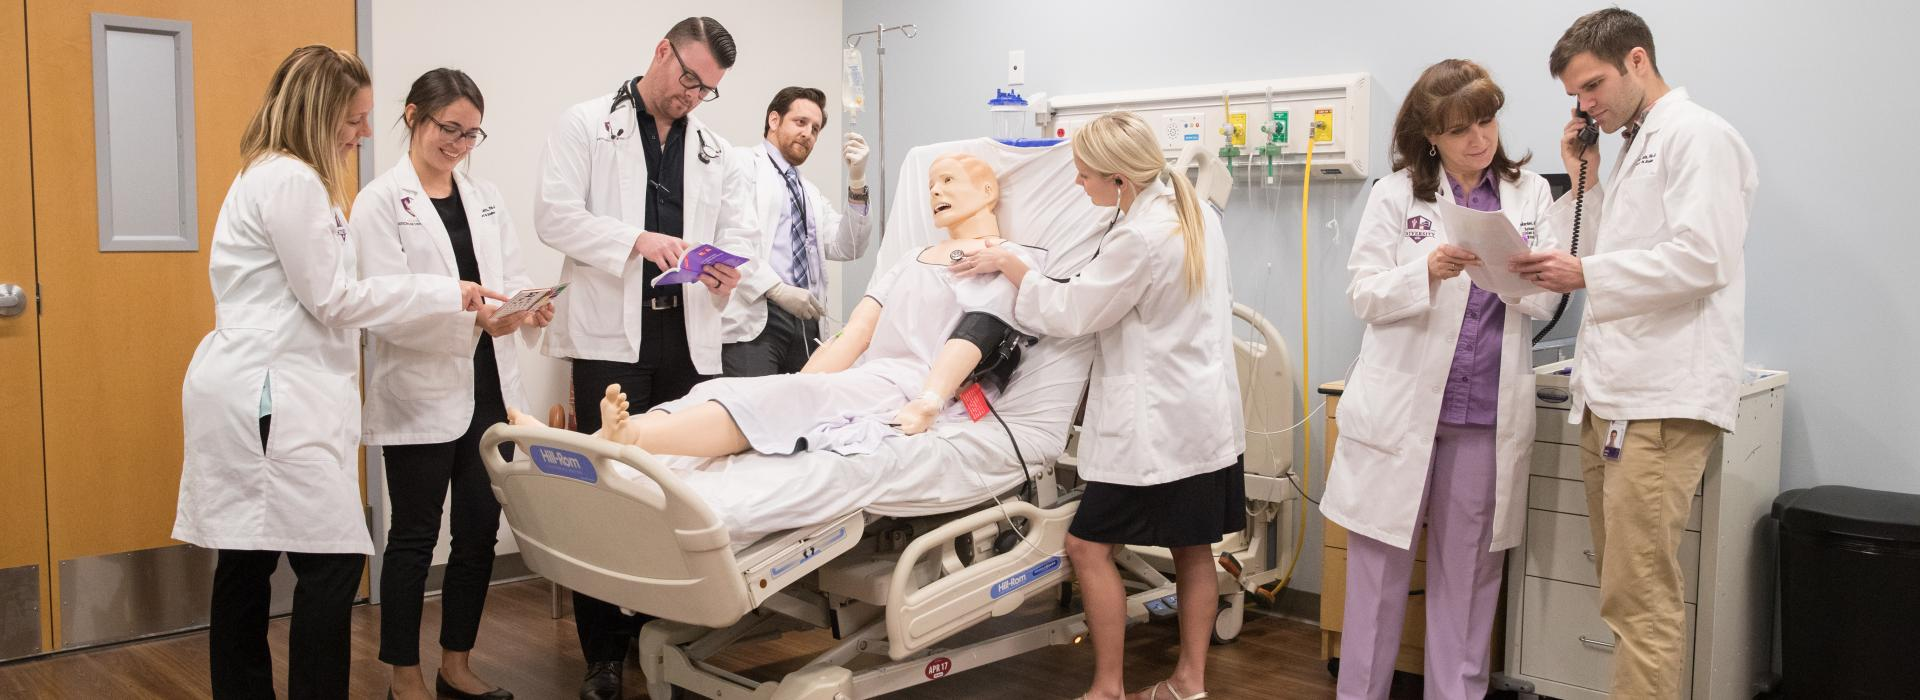 PA students work in the hospital simulation suite